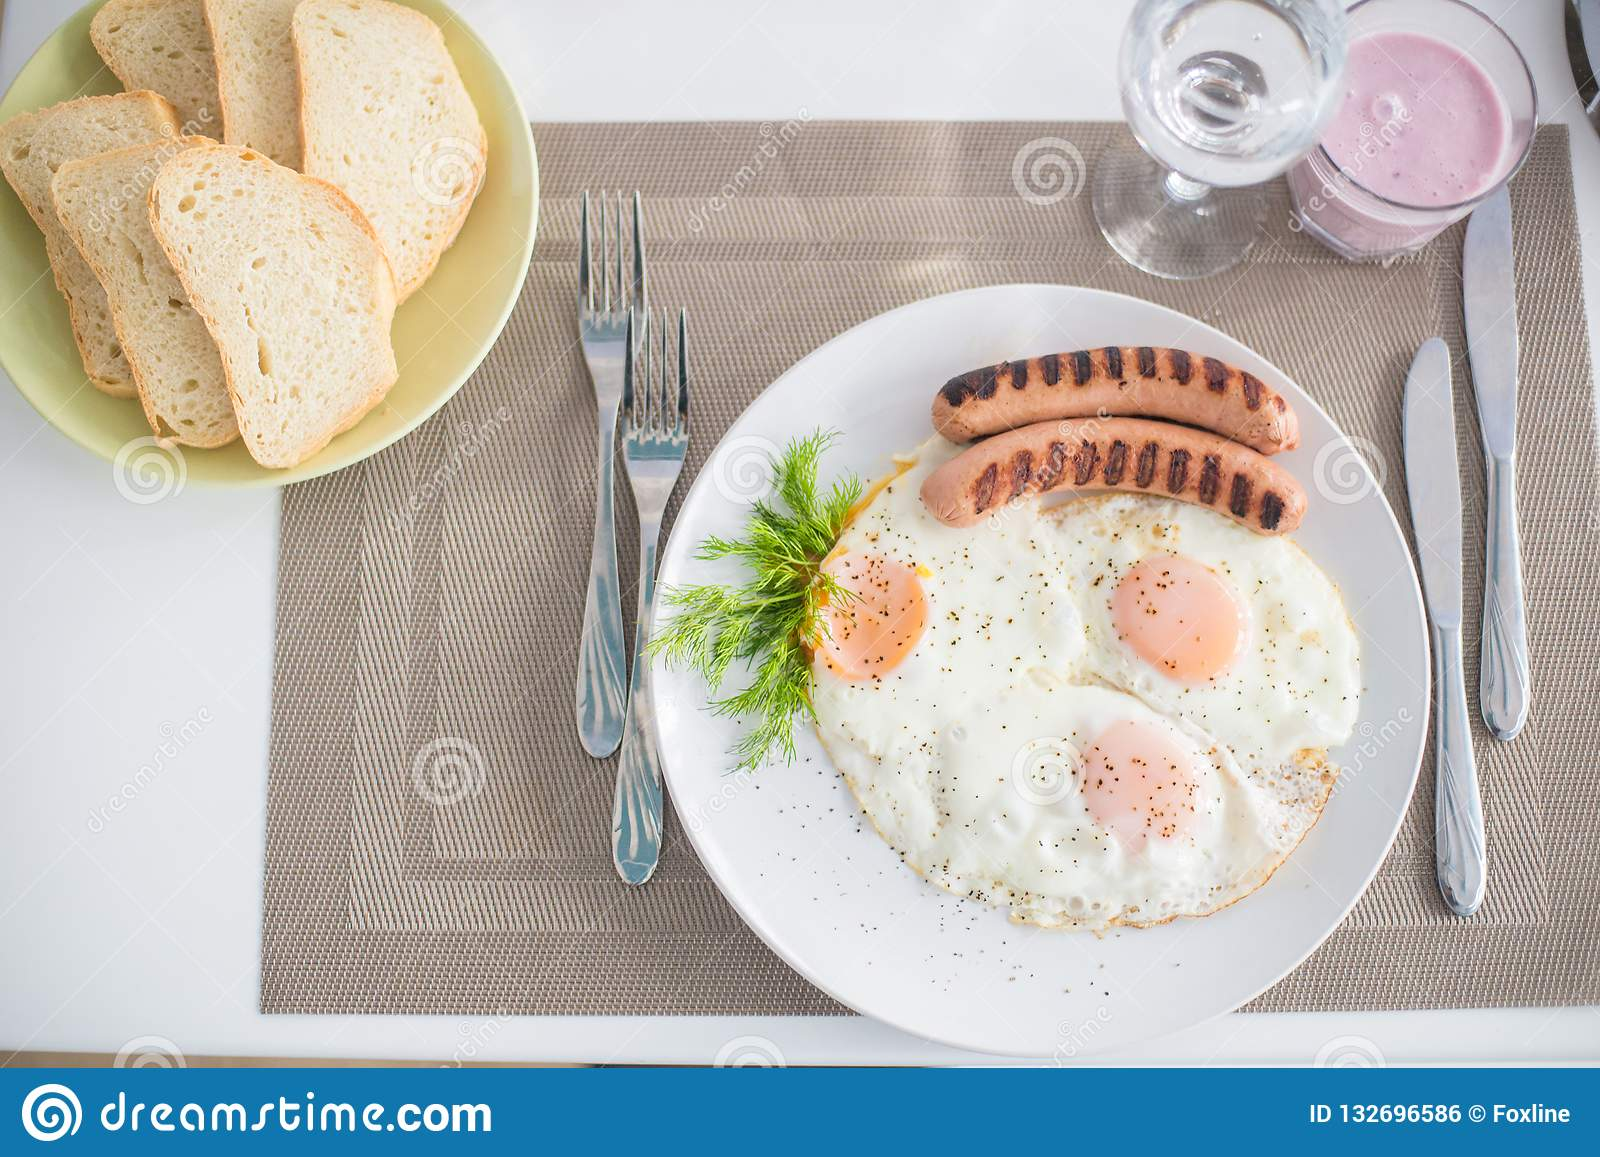 Traditional breakfast with sausages, fried eggs with ground black pepper and bread